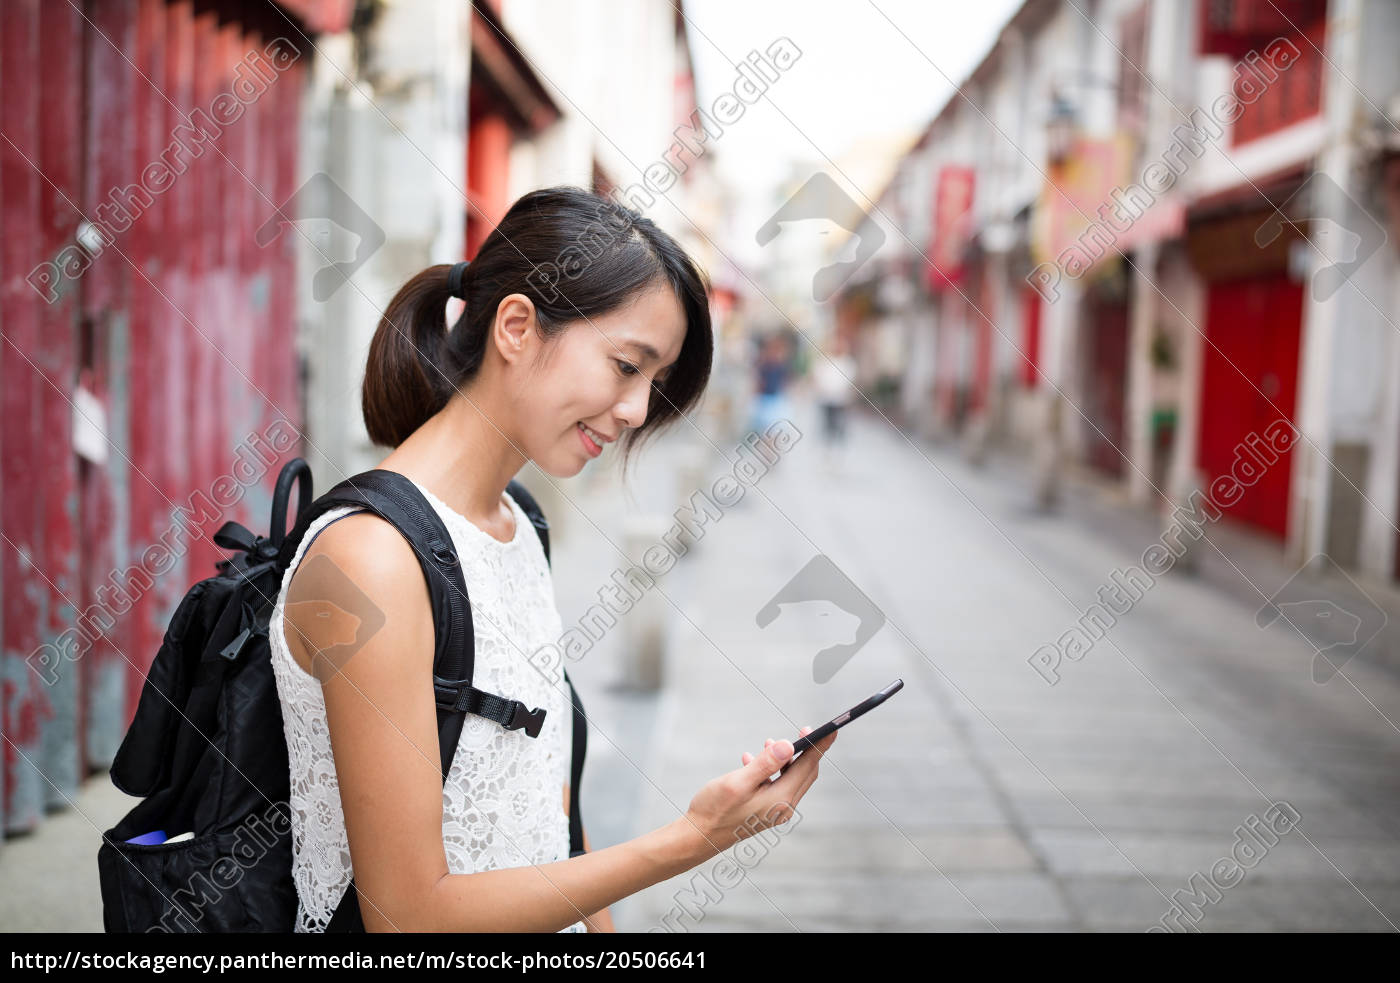 woman, using, cellphone, in, macao - 20506641